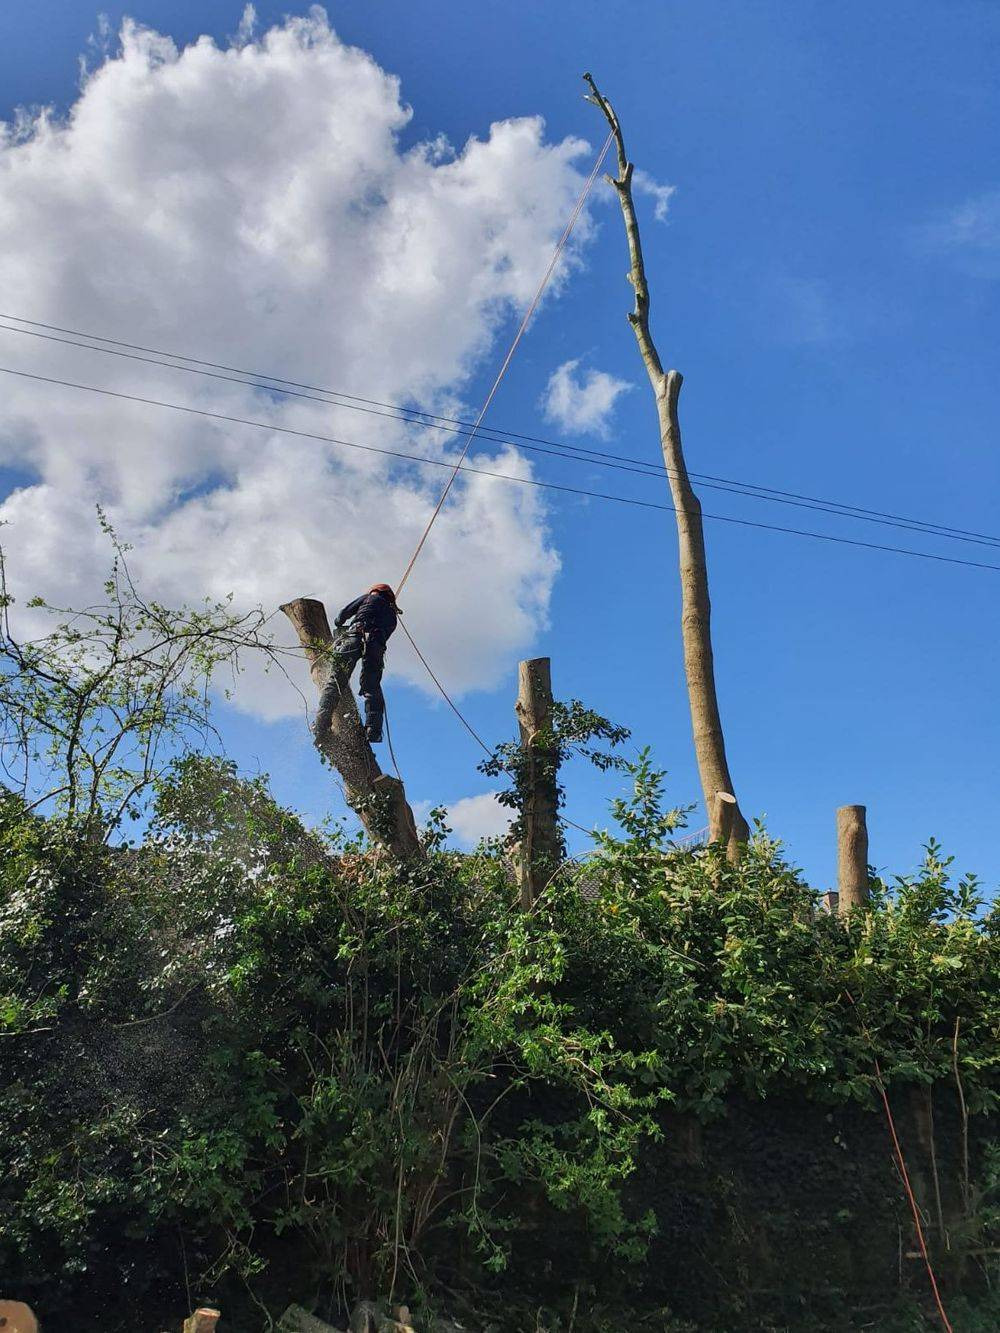 A1 Arborist Tree Surgeon sectional dismantling trees